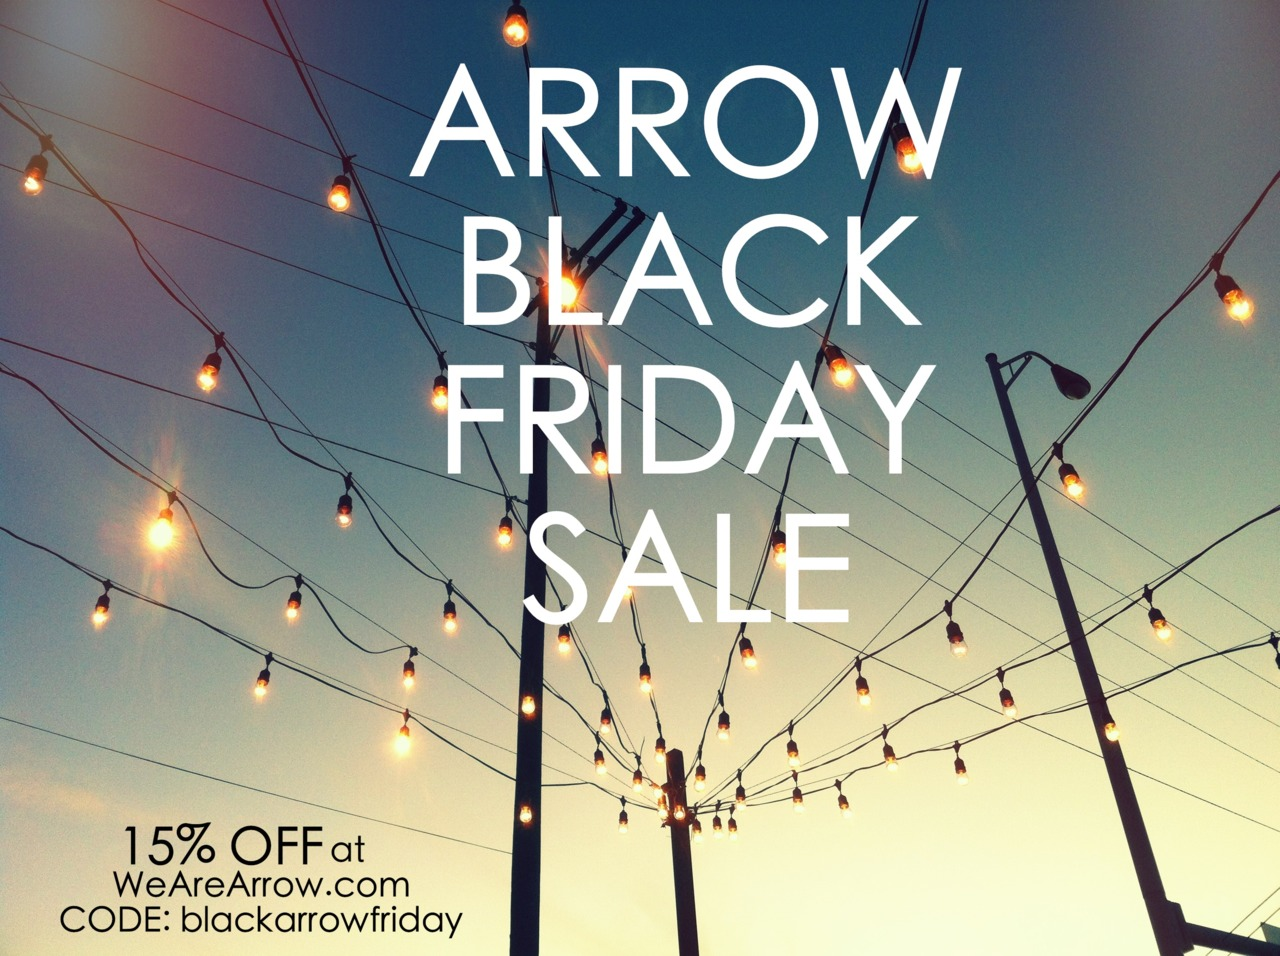 FRIENDS! Getting your crazy shop on tomorrow morning? Instead of waiting in line you can order, still in bed or hammock, from  ARROW ! We're running a special for Black Friday, check it out!